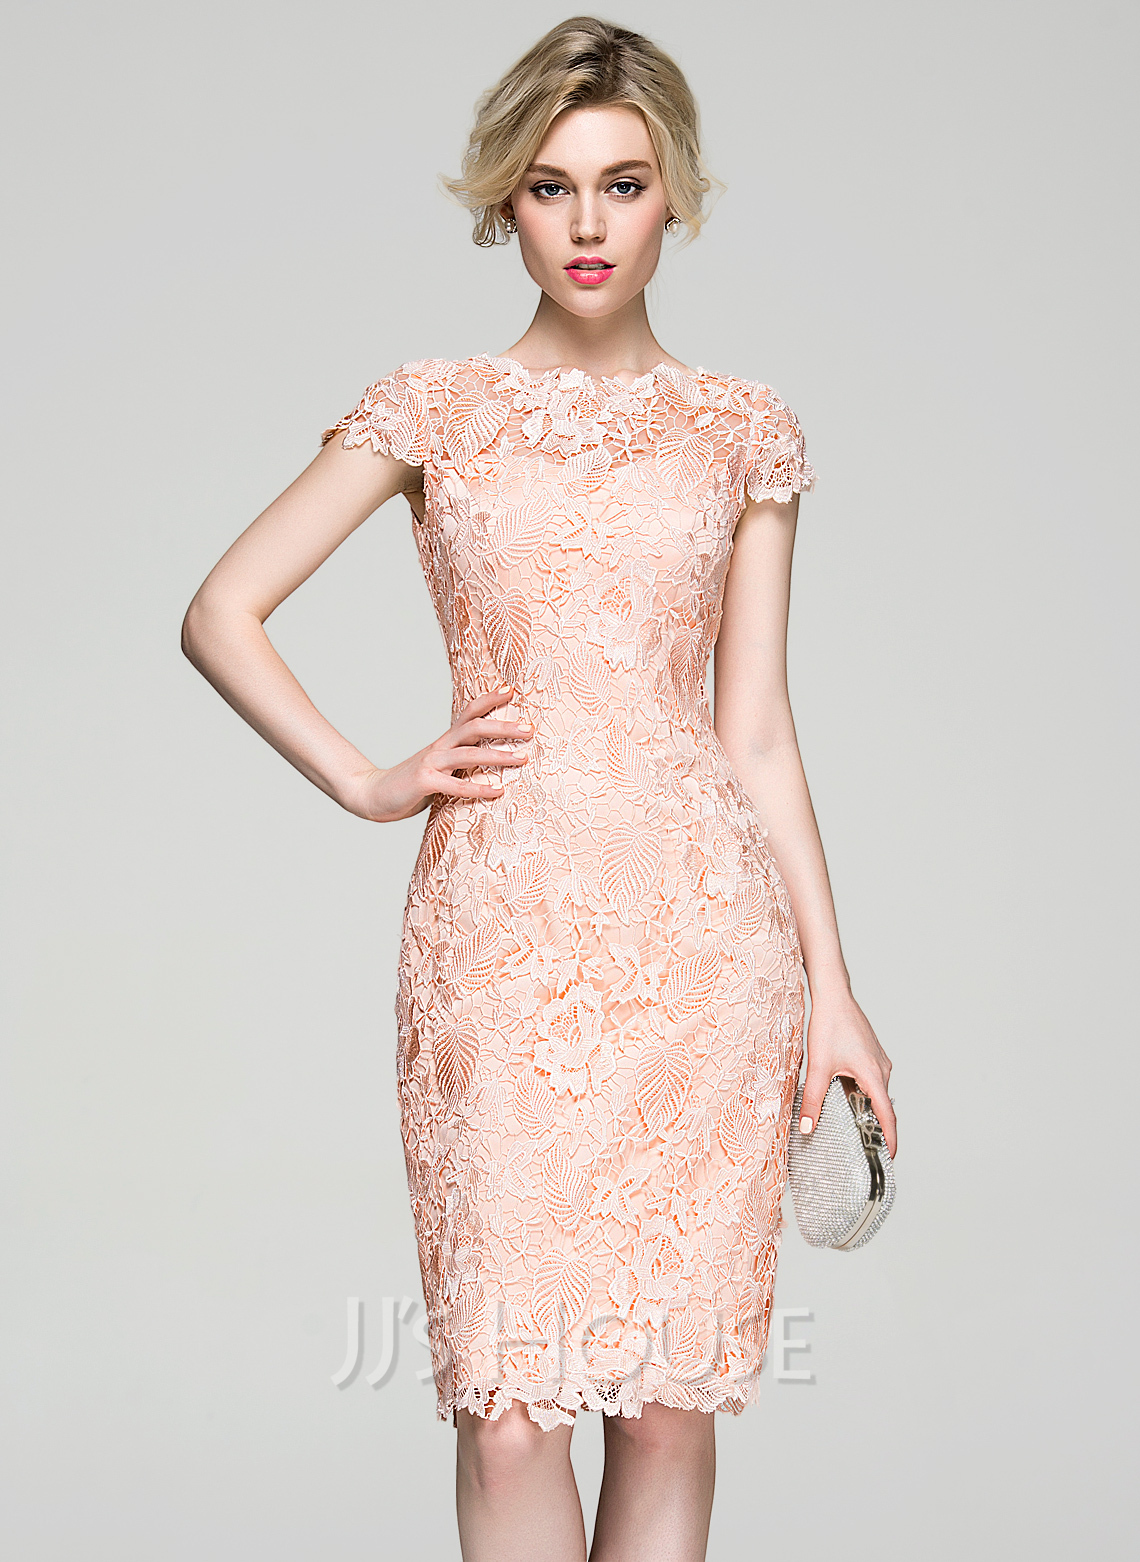 Sheath/Column Scoop Neck Knee-Length Lace Cocktail Dress (016081199 ...